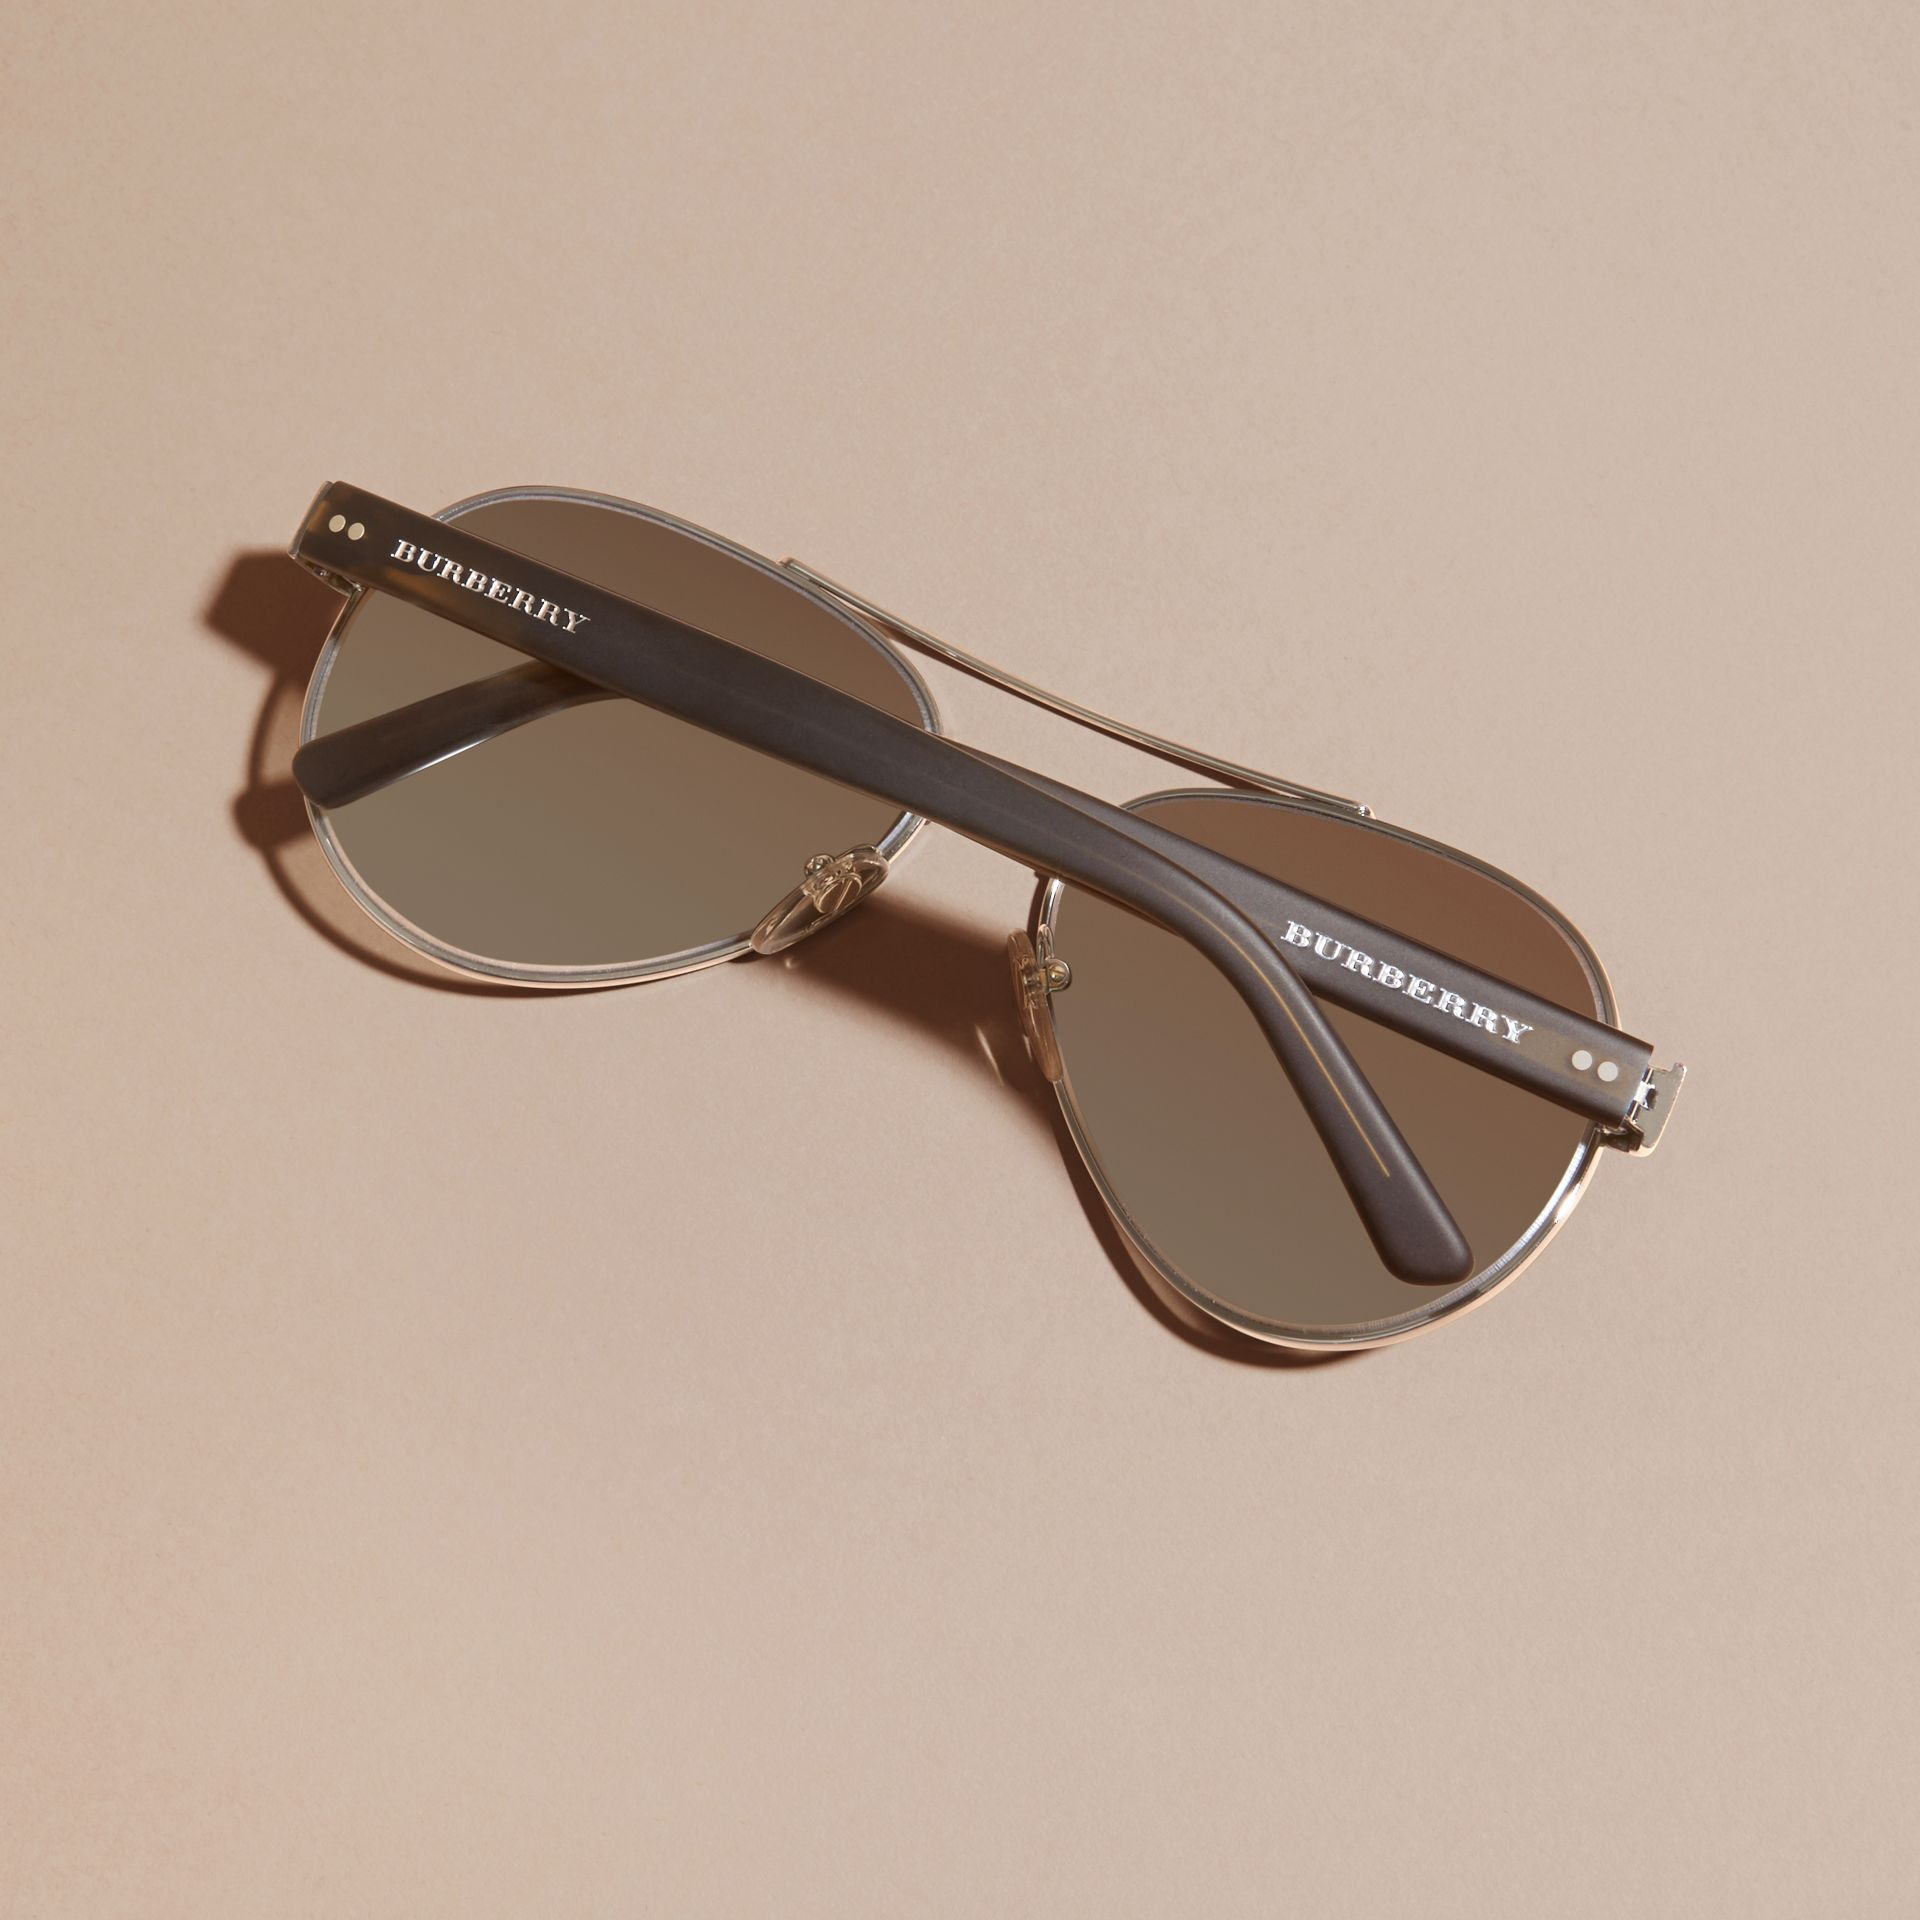 Pilot Sunglasses in Brushed Steel - Men | Burberry - gallery image 4